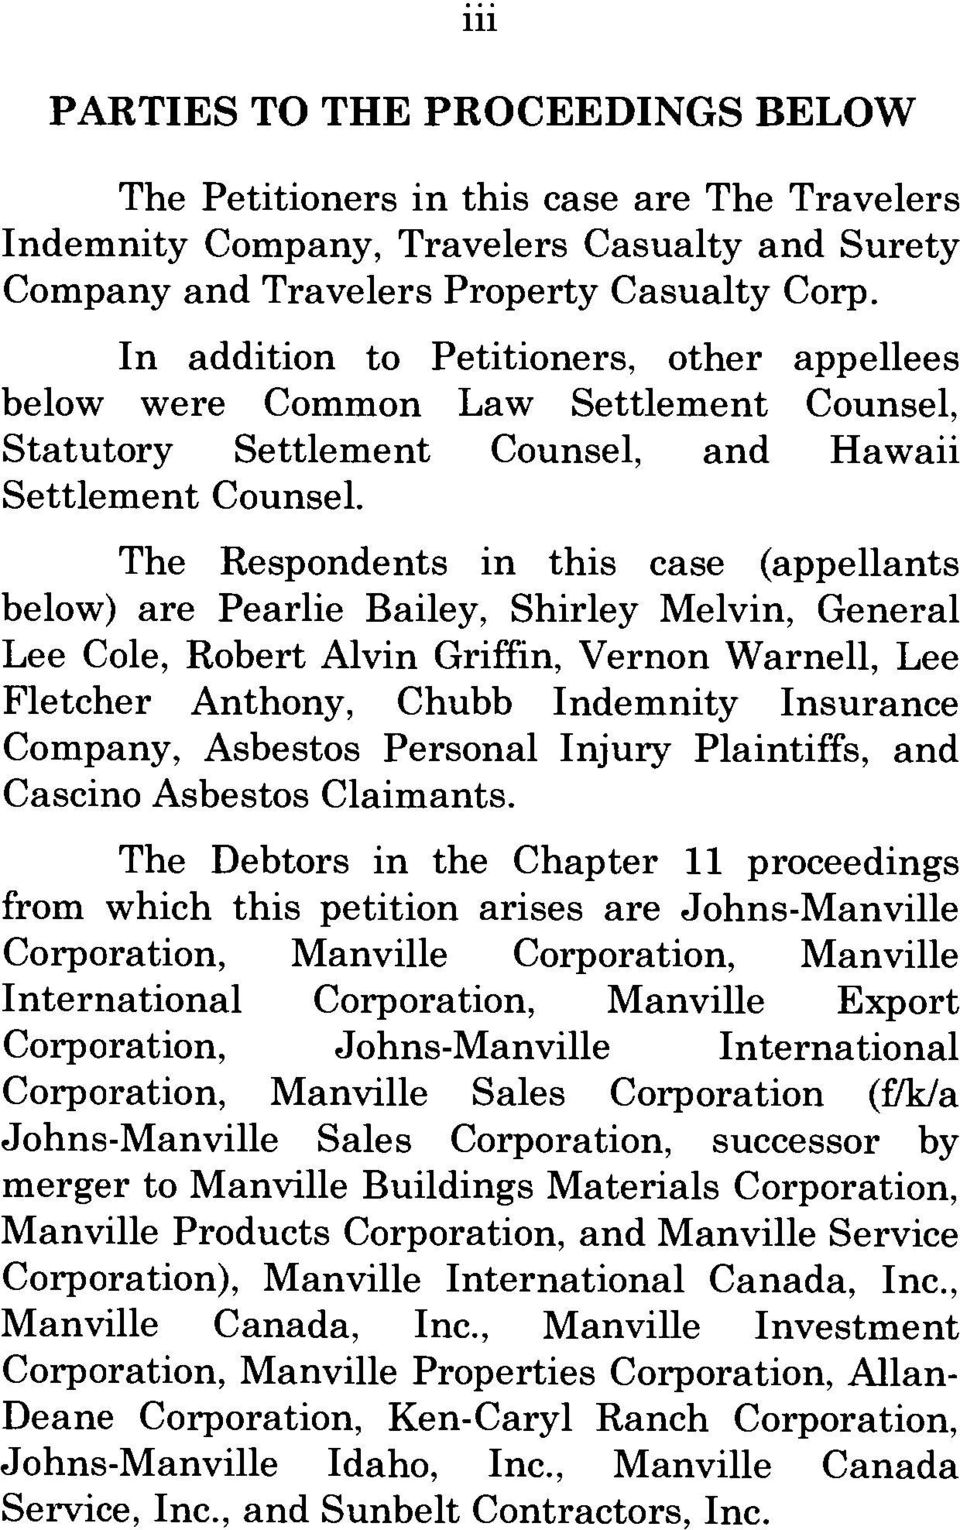 The Respondents in this case (appellants below) are Pearlie Bailey, Shirley Melvin, General Lee Cole, Robert Alvin Griffin, Vernon Warnell, Lee Fletcher Anthony, Chubb Indemnity Insurance Company,